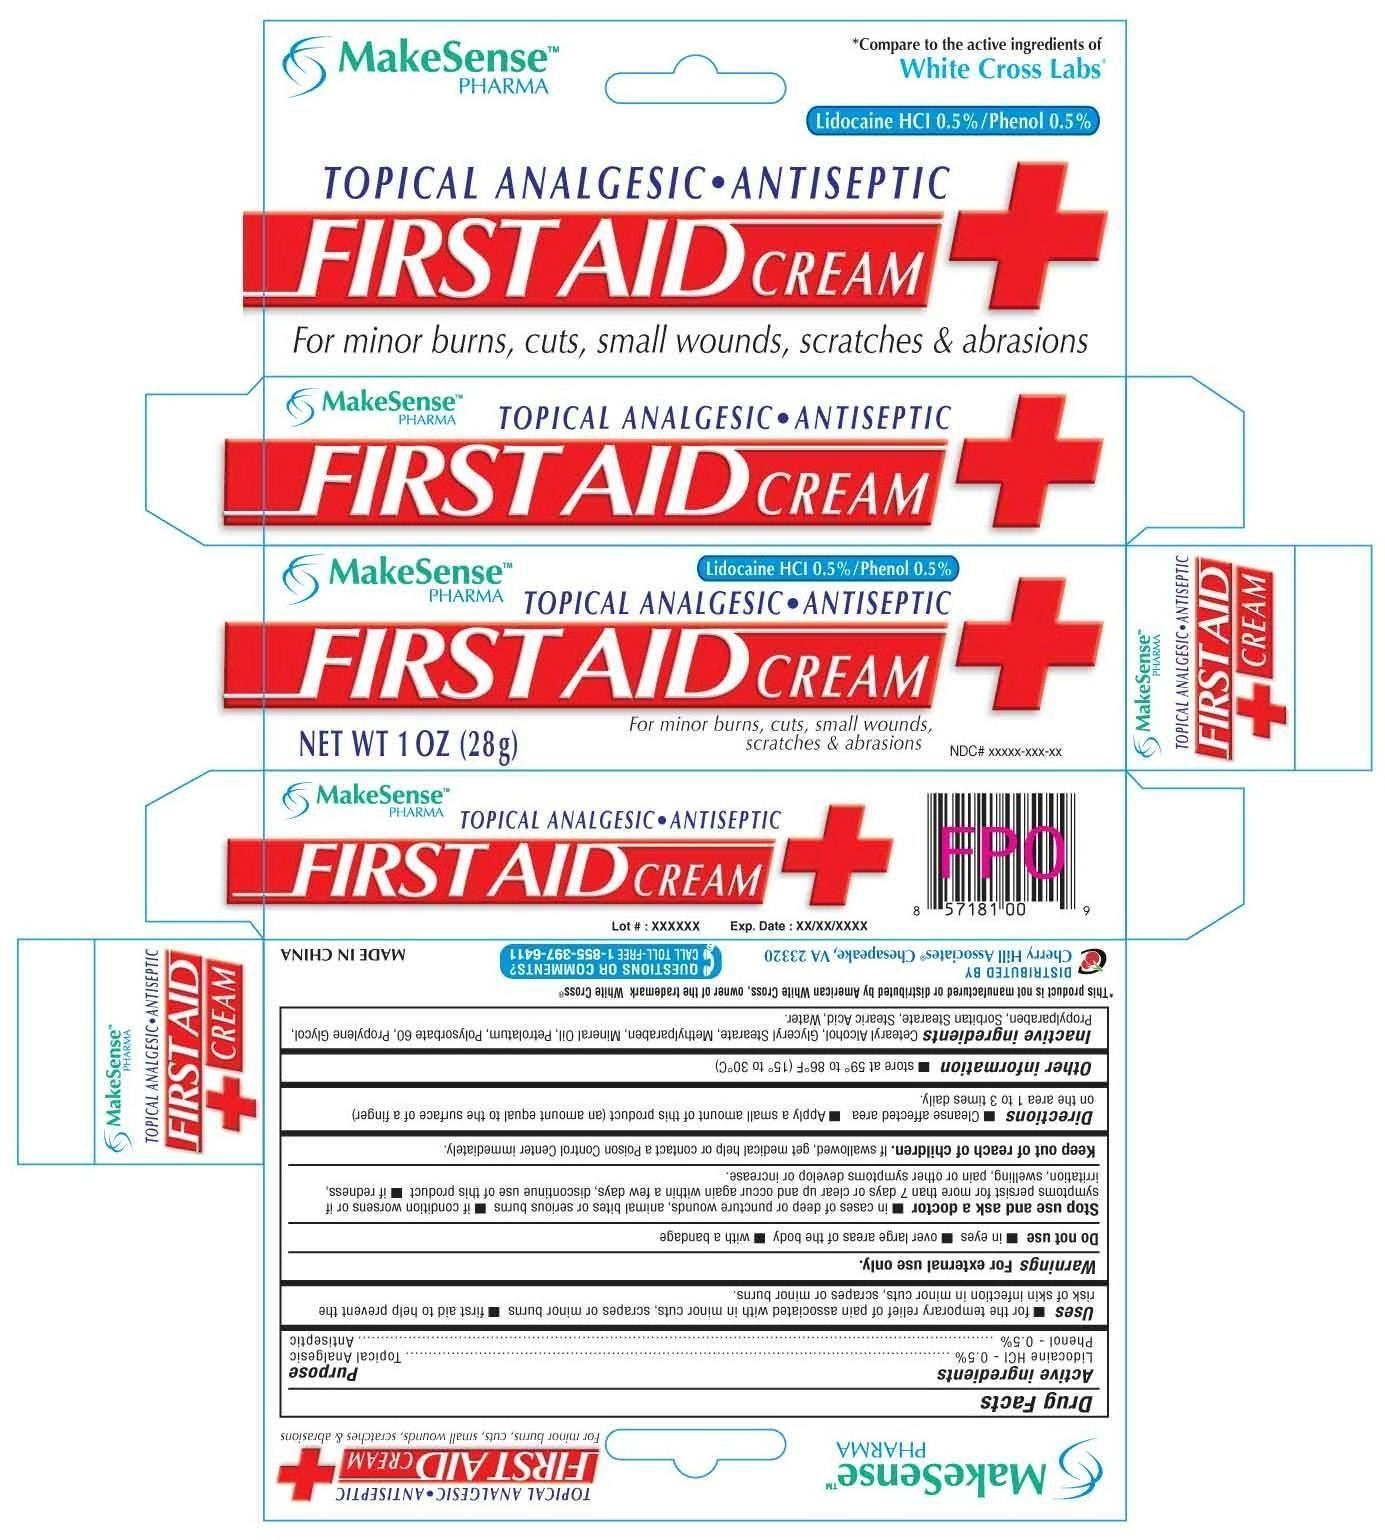 Makesense First Aid (Lidocaine Hydrochloride Phenol) Cream [Cherry Hill Sales Co]